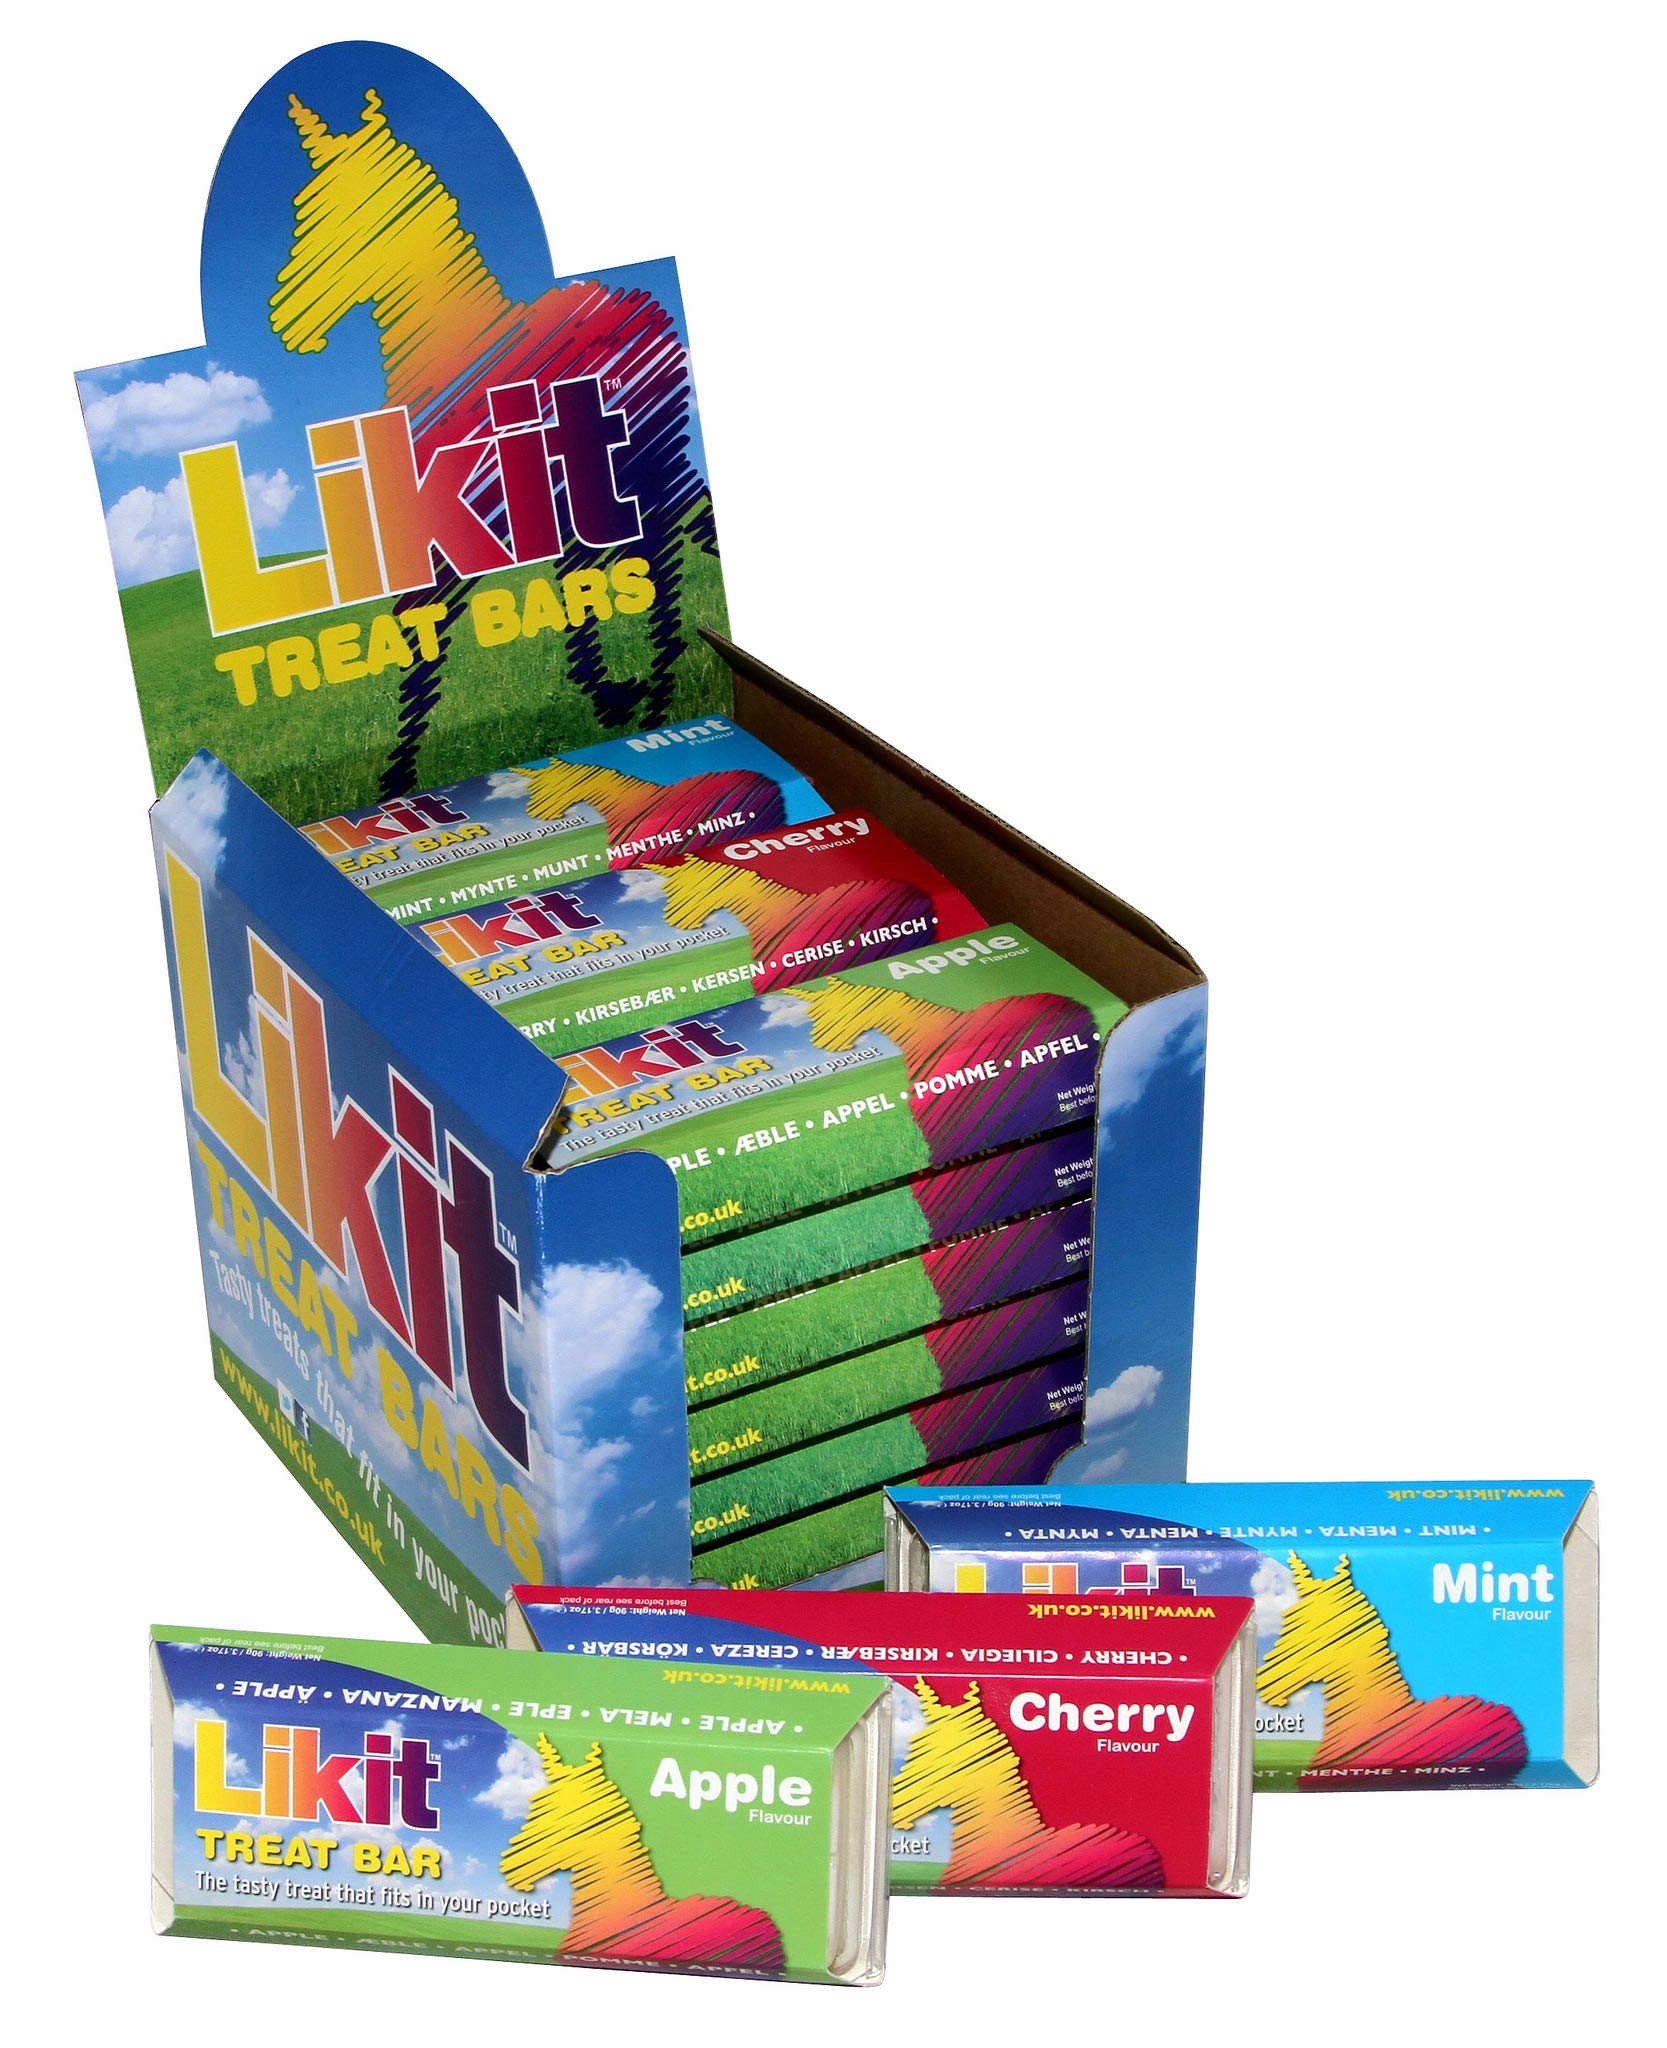 Likit Treat Bar - Mint, Cherry and Apple - 3 pack by Waldhausen